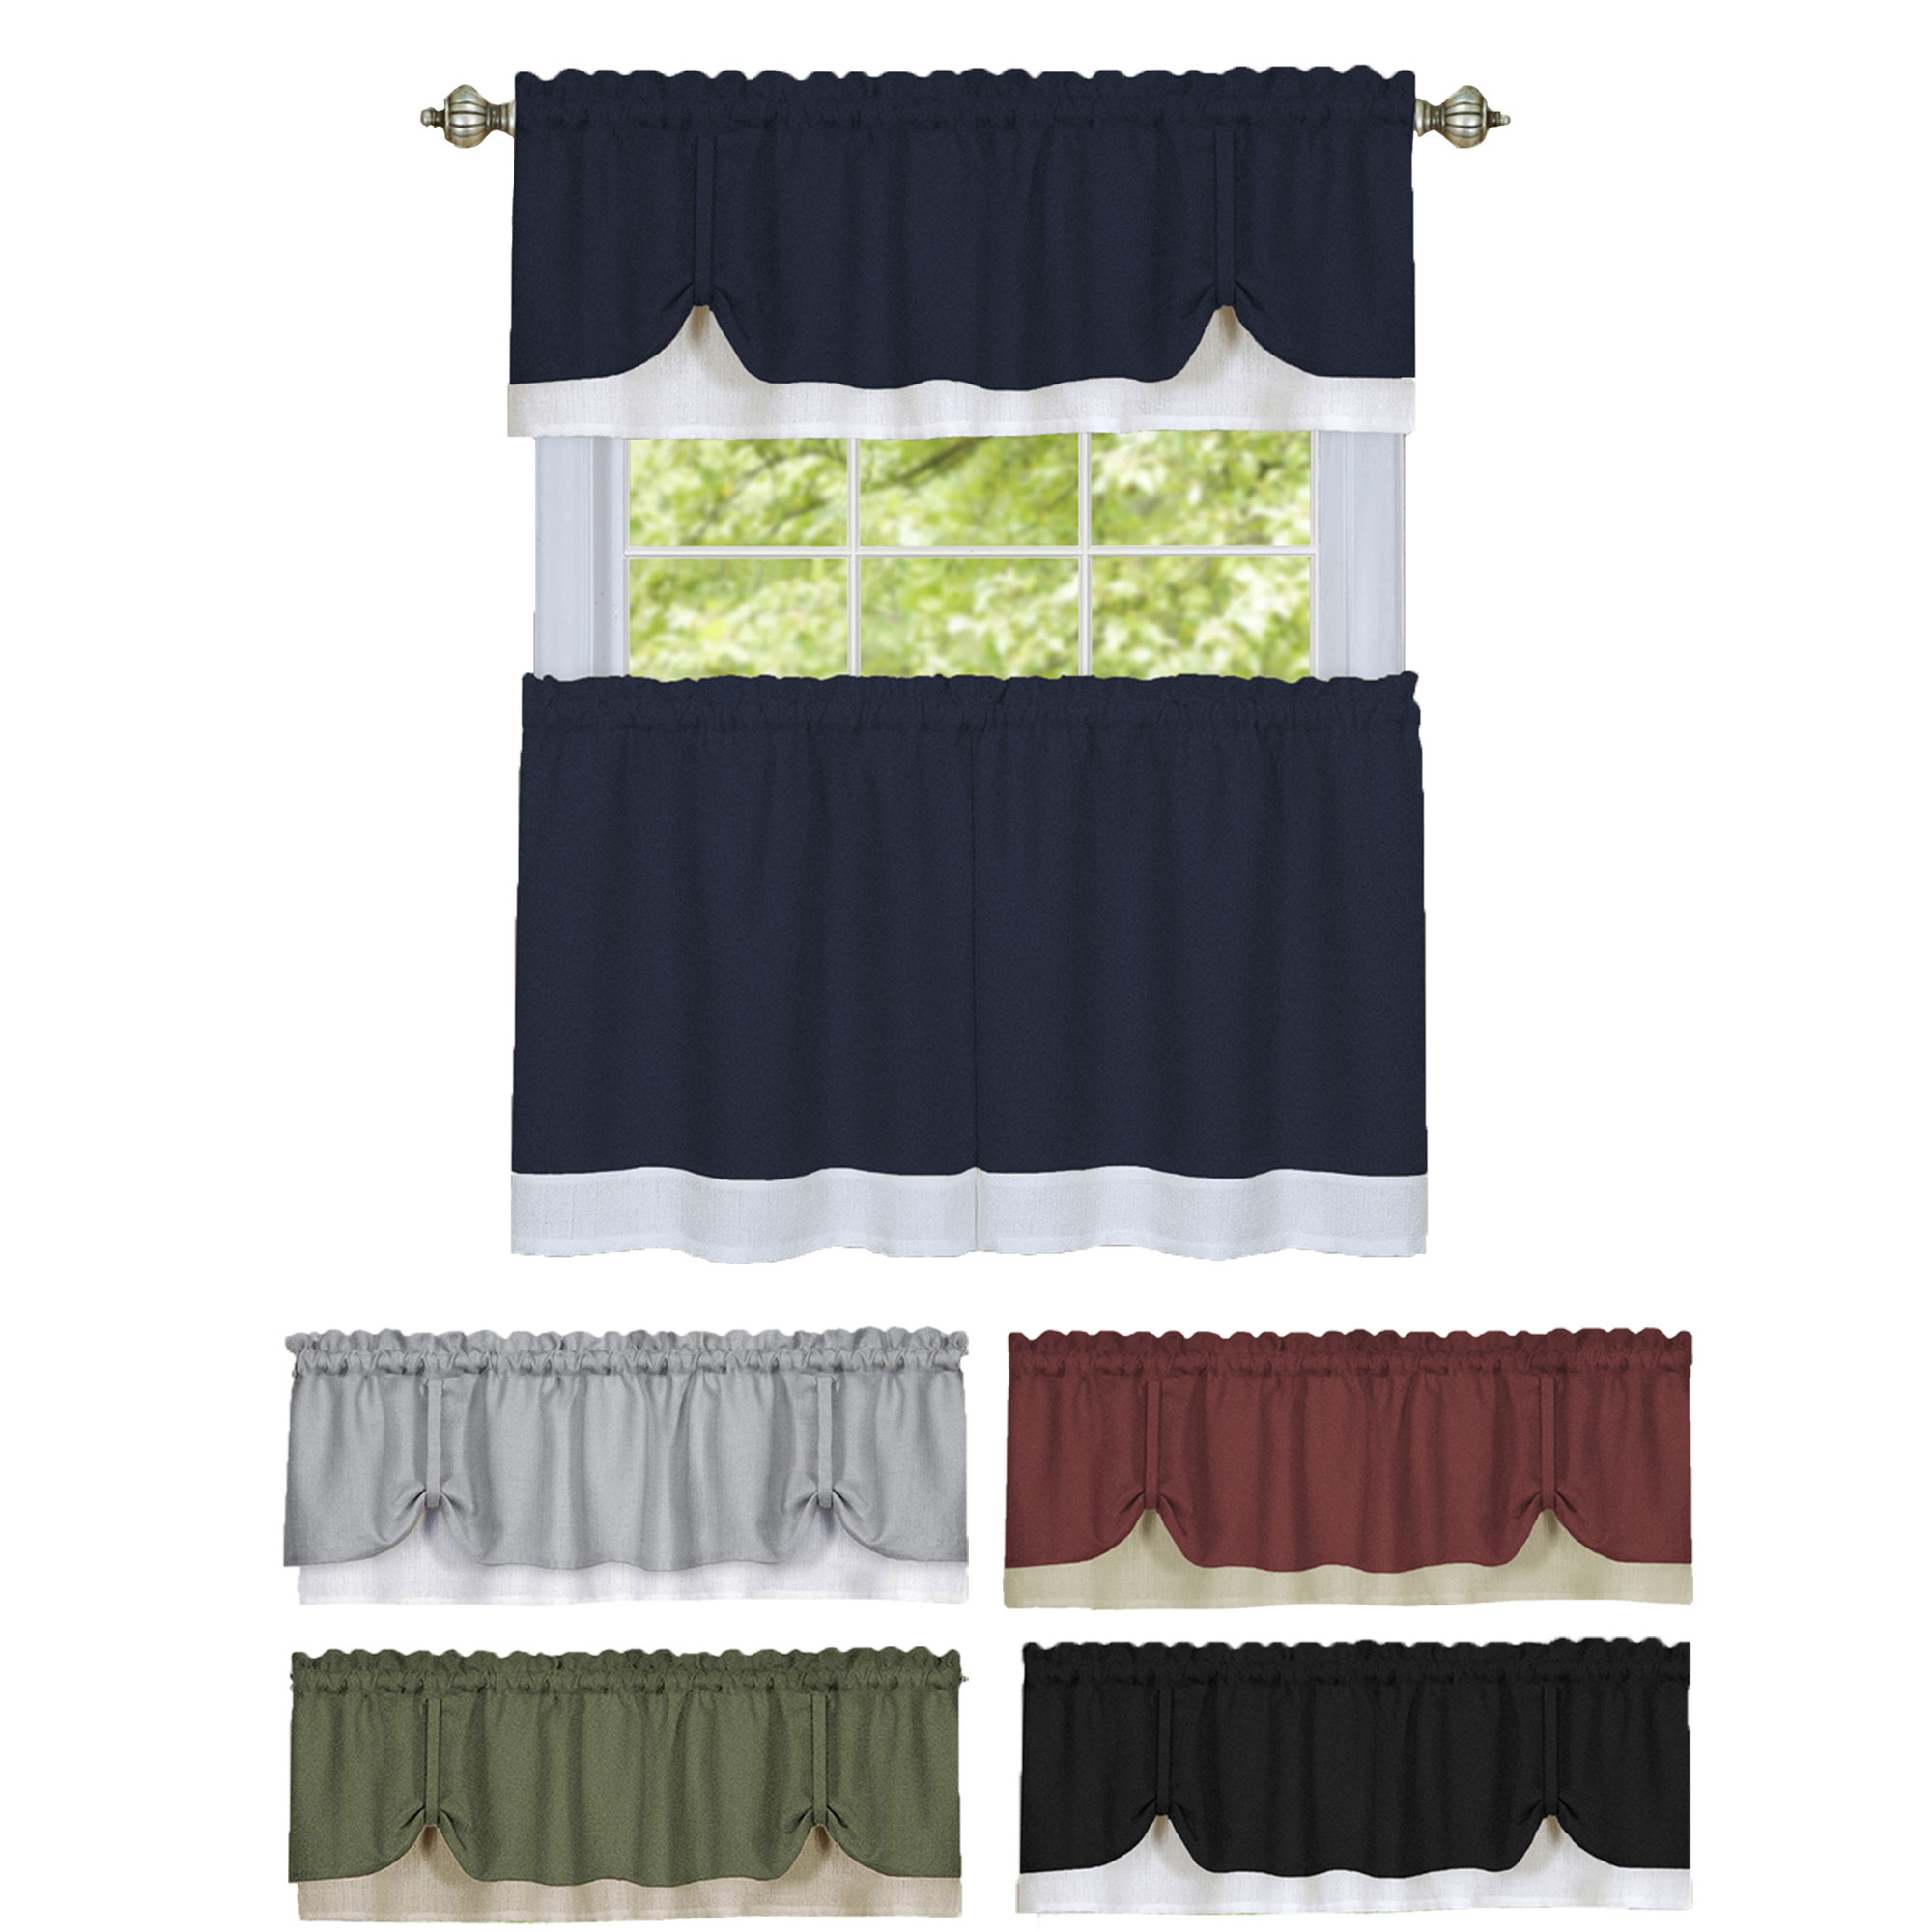 Details About Solid Window Curtain Double Layer Tier Pair & Valance Set Throughout Favorite Window Curtain Tier And Valance Sets (View 4 of 20)